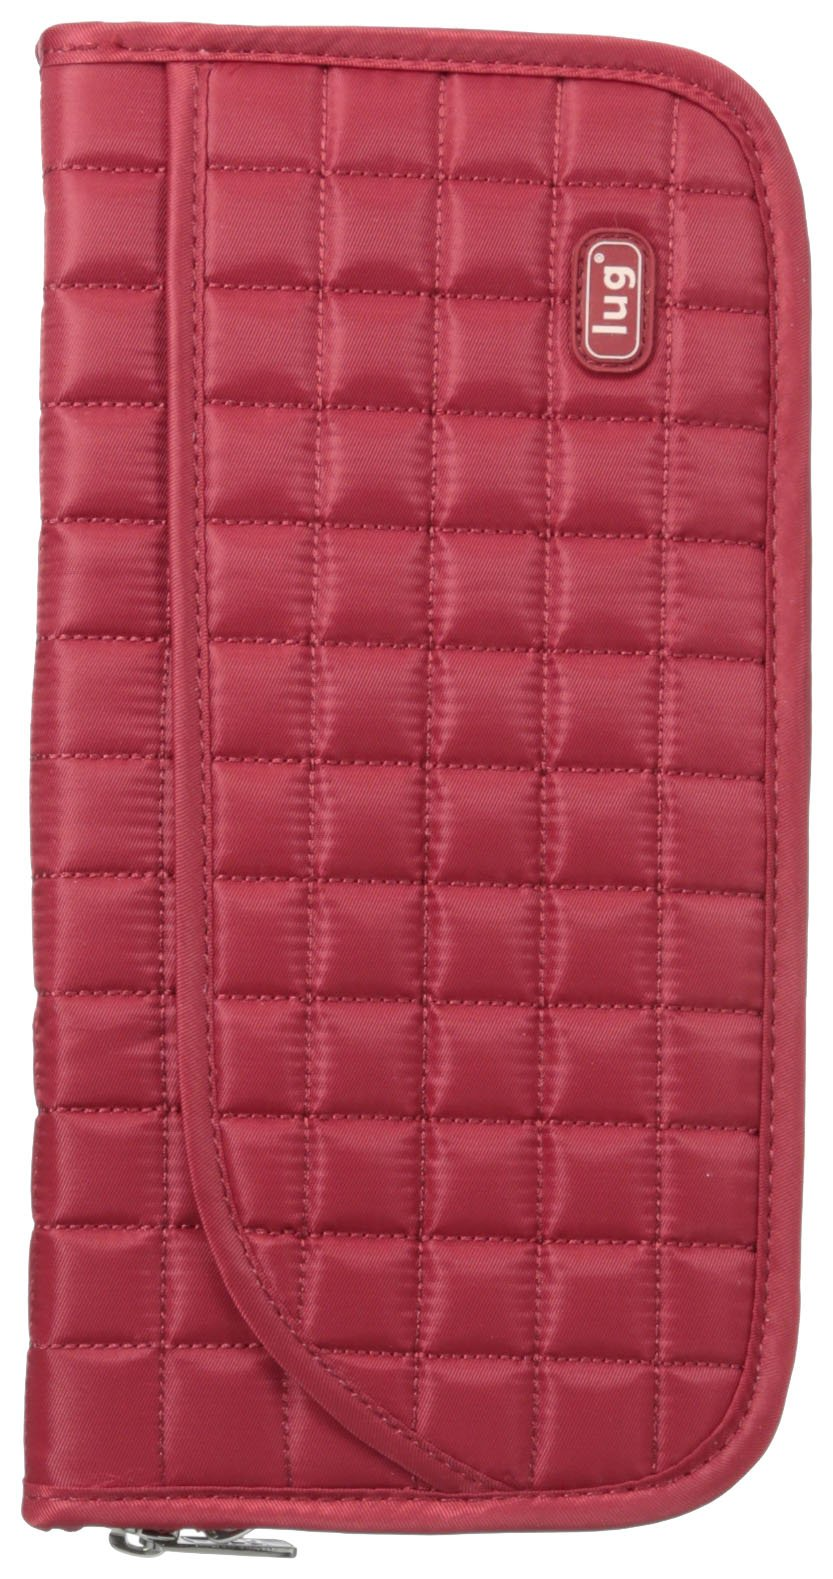 Lug Tango Travel Wallet, Crimson Red